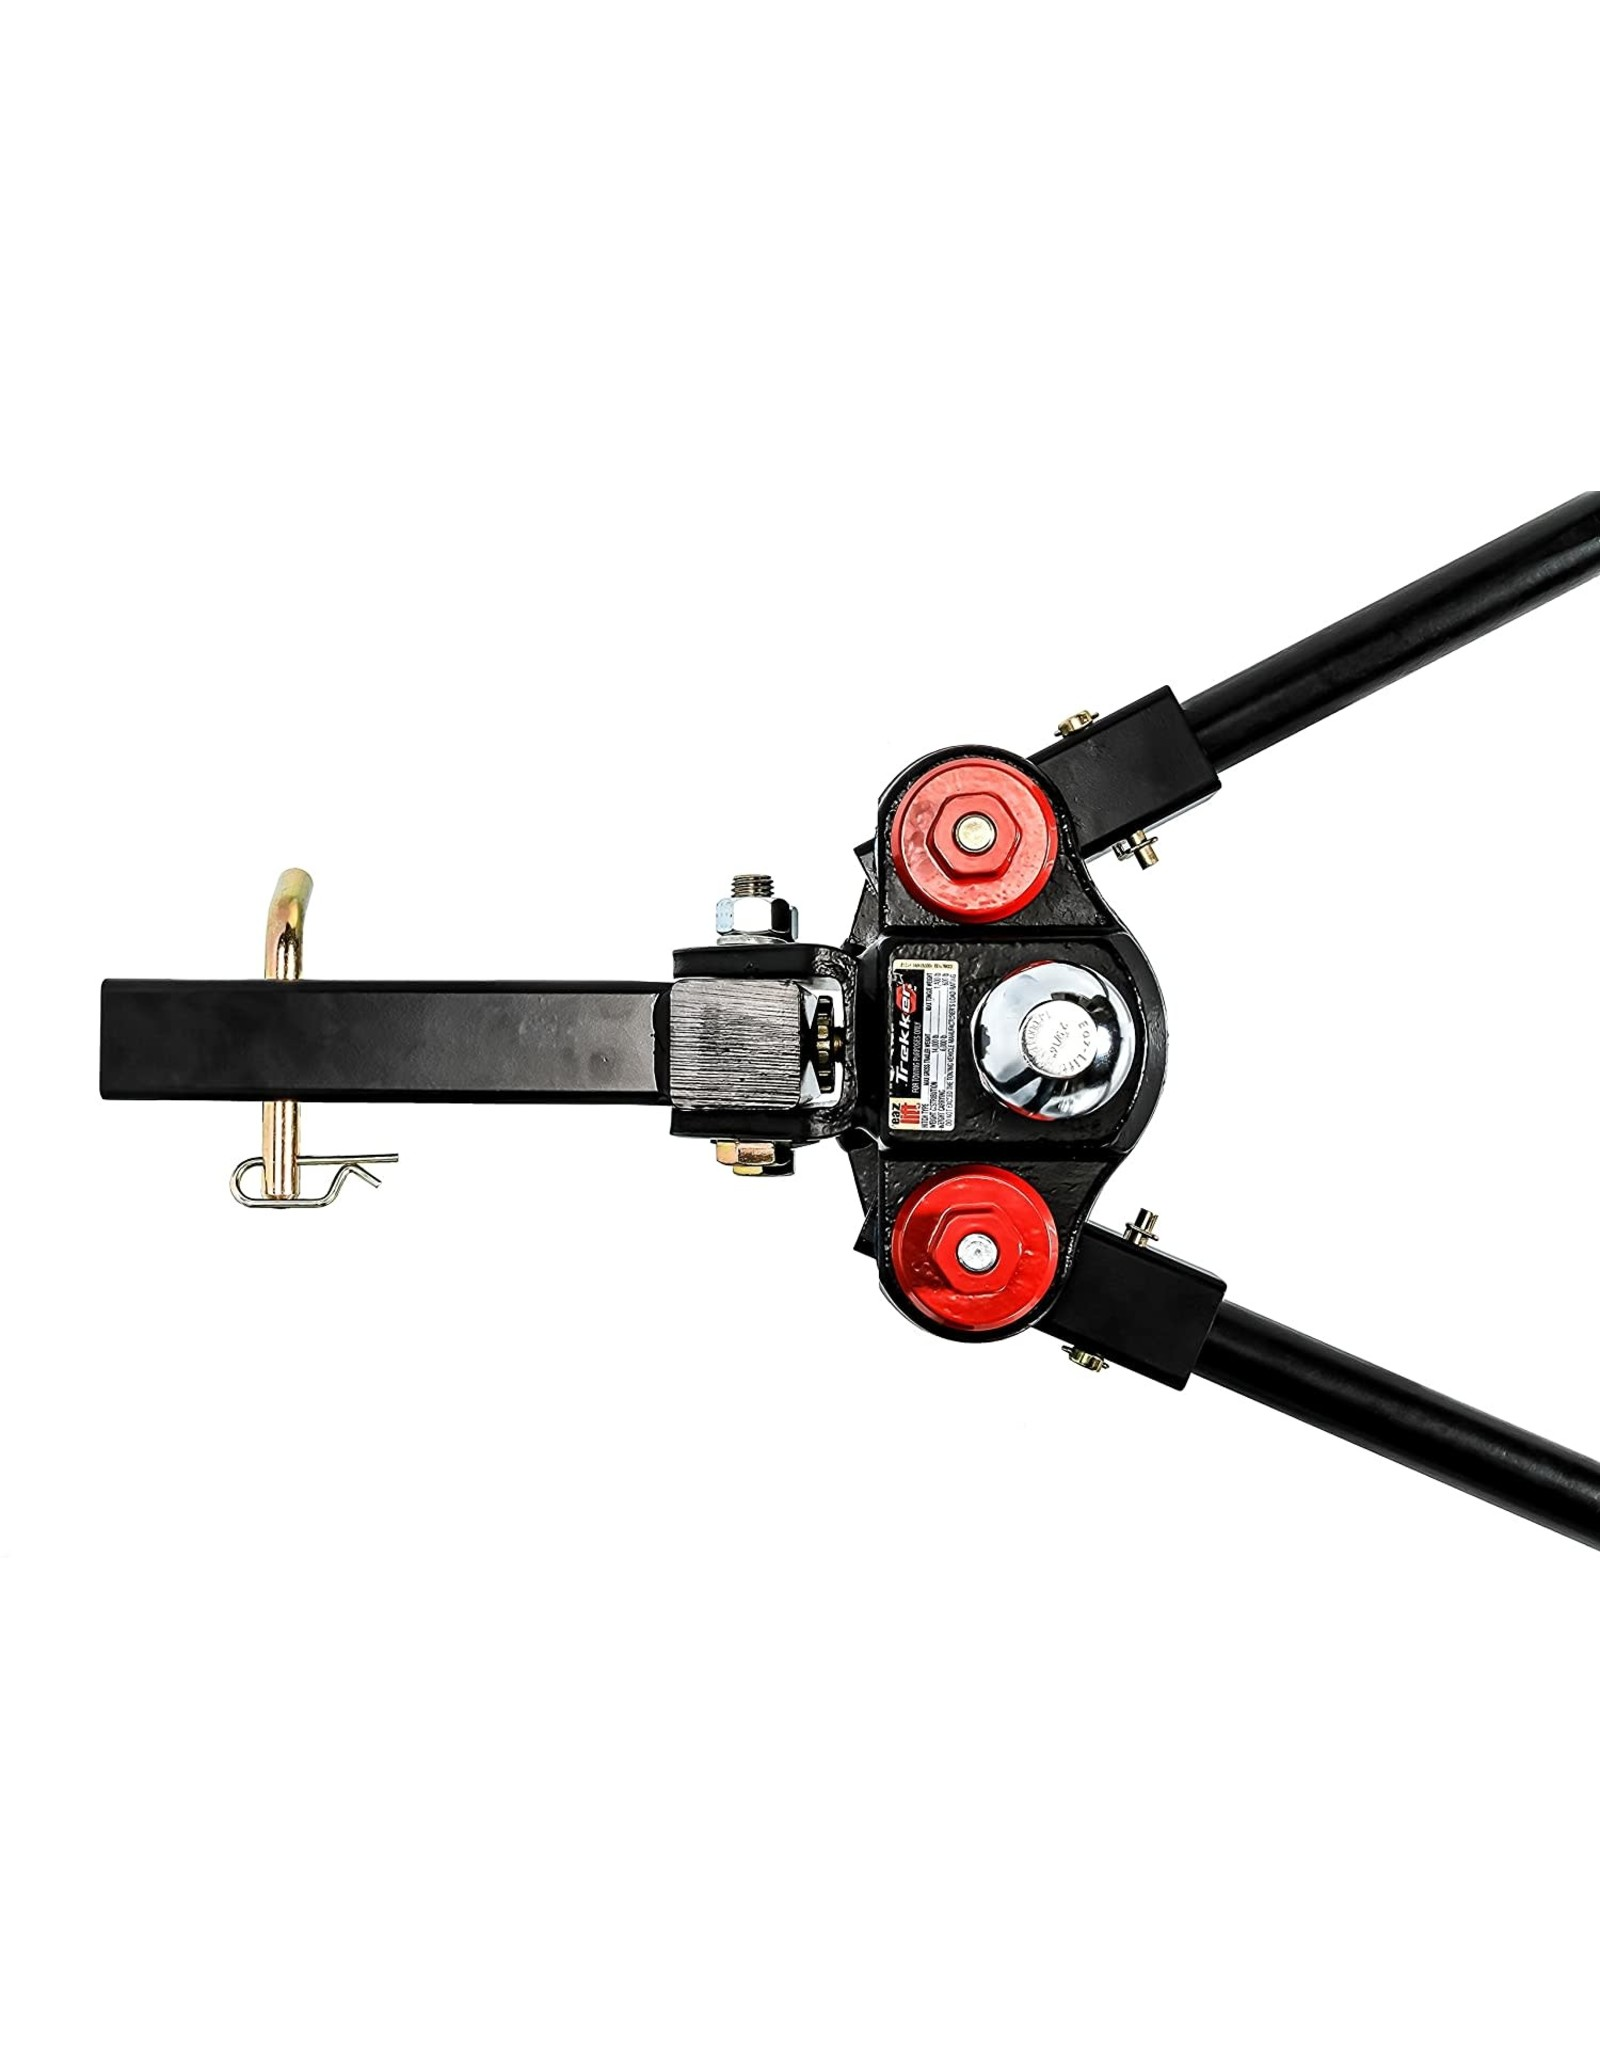 EAZ LIFT Eaz-Lift 48701 Trekker Weight Distributing Hitch with Adaptive Sway Control - 600 lb. Weight Rating